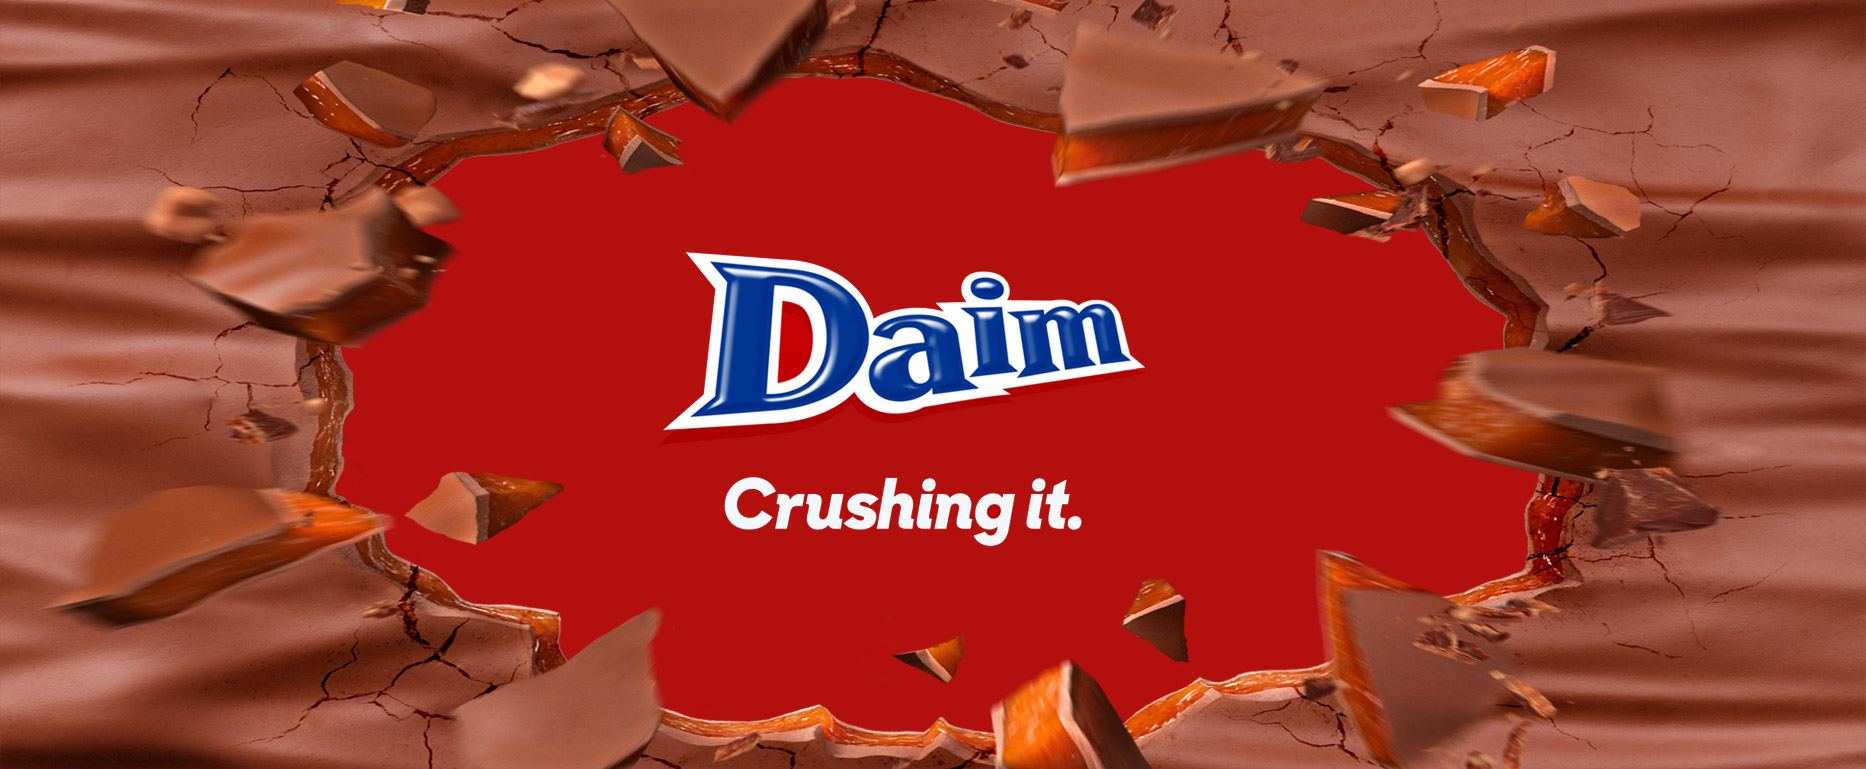 Daim - Crushing It